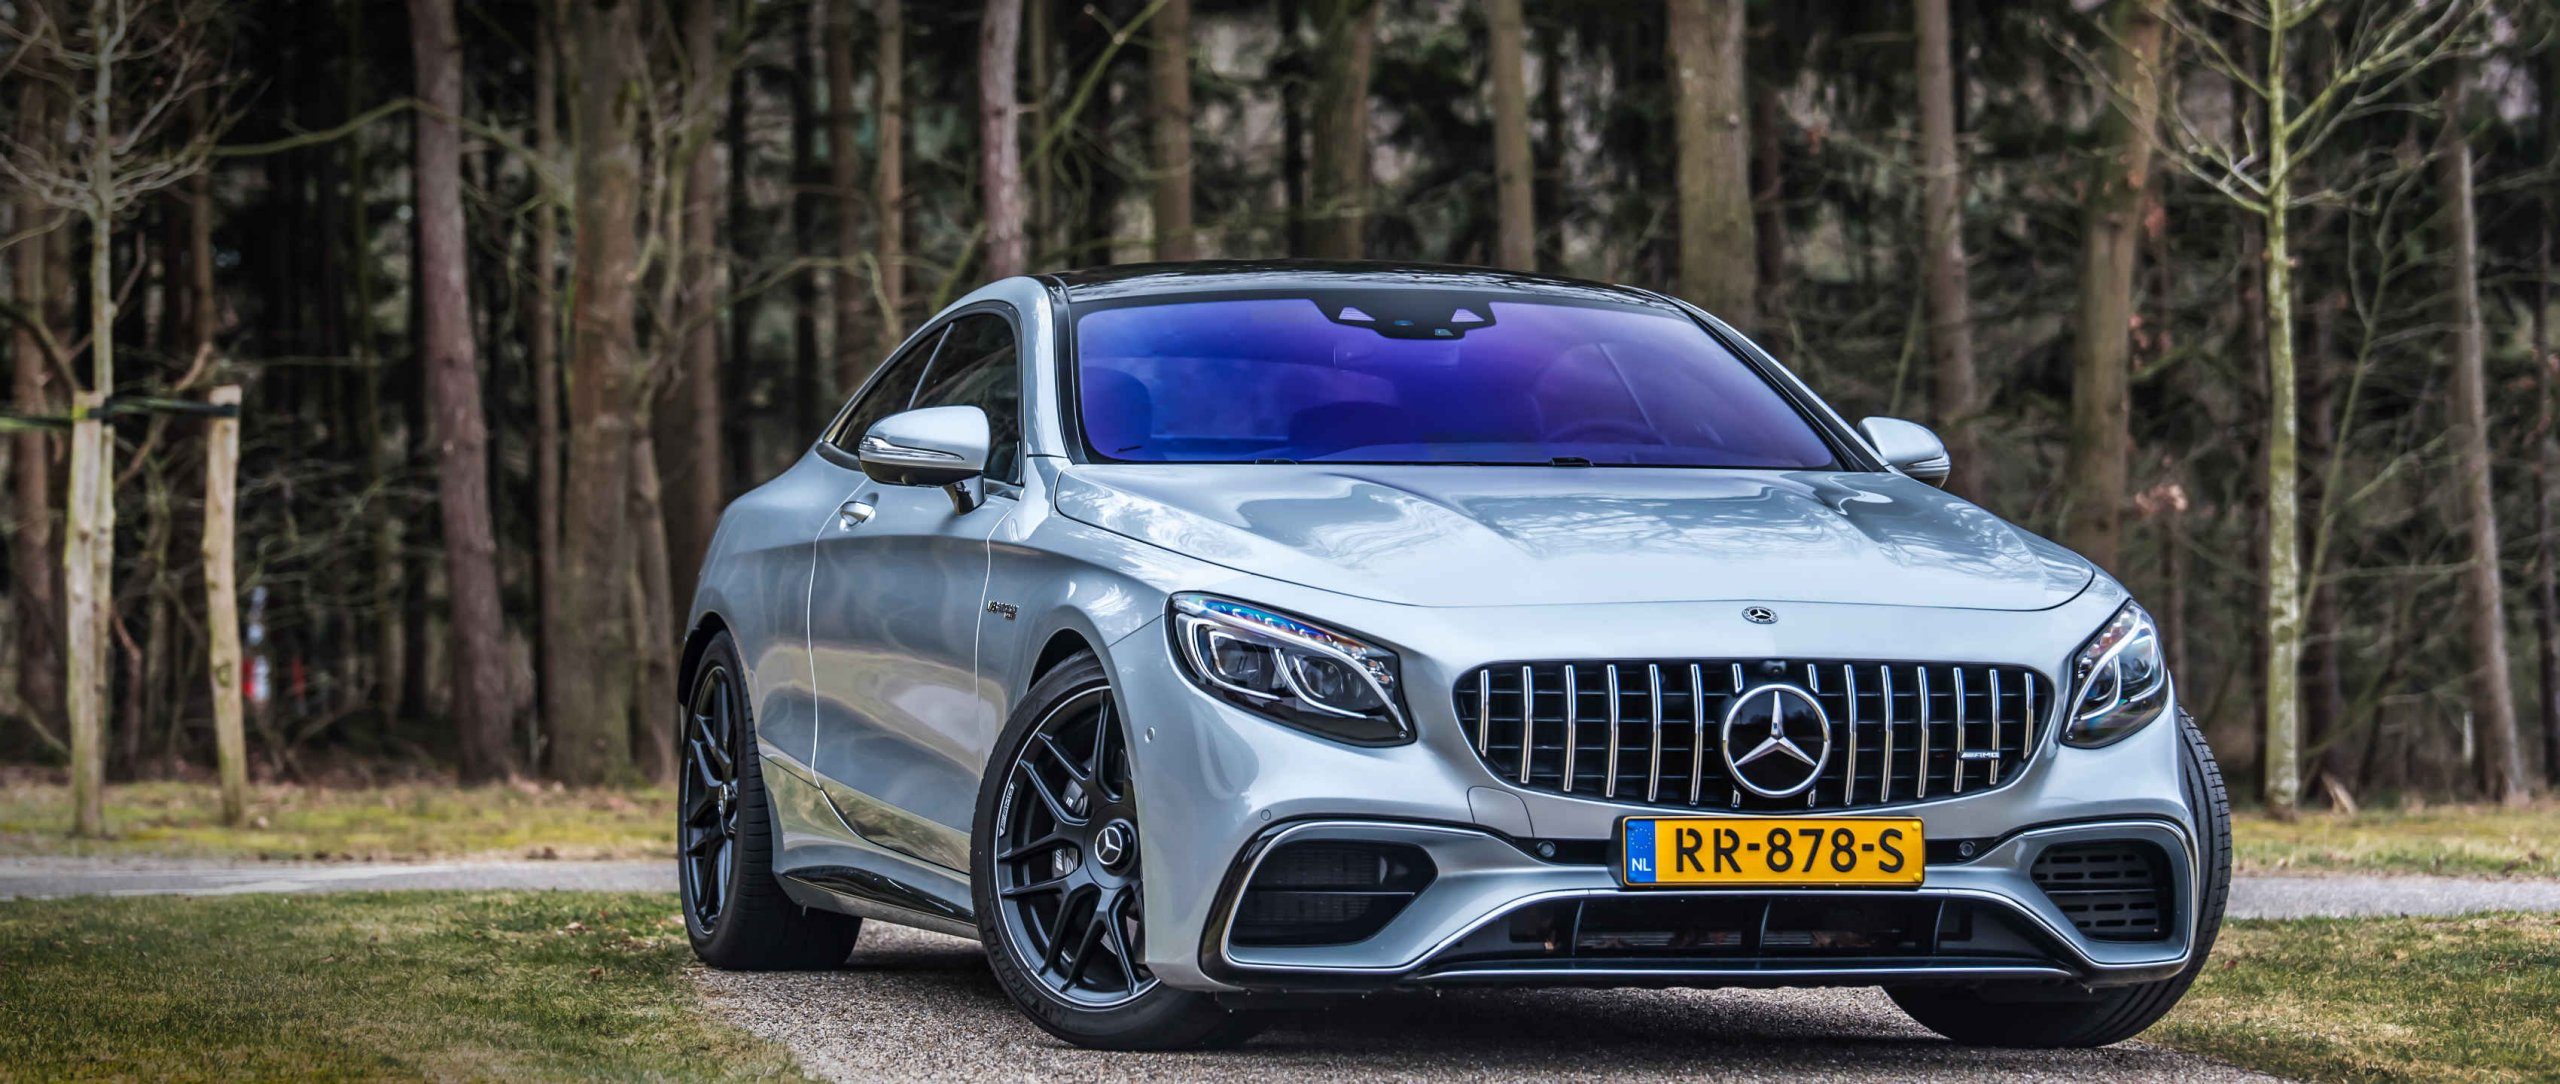 Mercedes-AMG S 63 4MATIC+ Coupé C 217 in diamond silver and with AMG Exterior Carbon package.